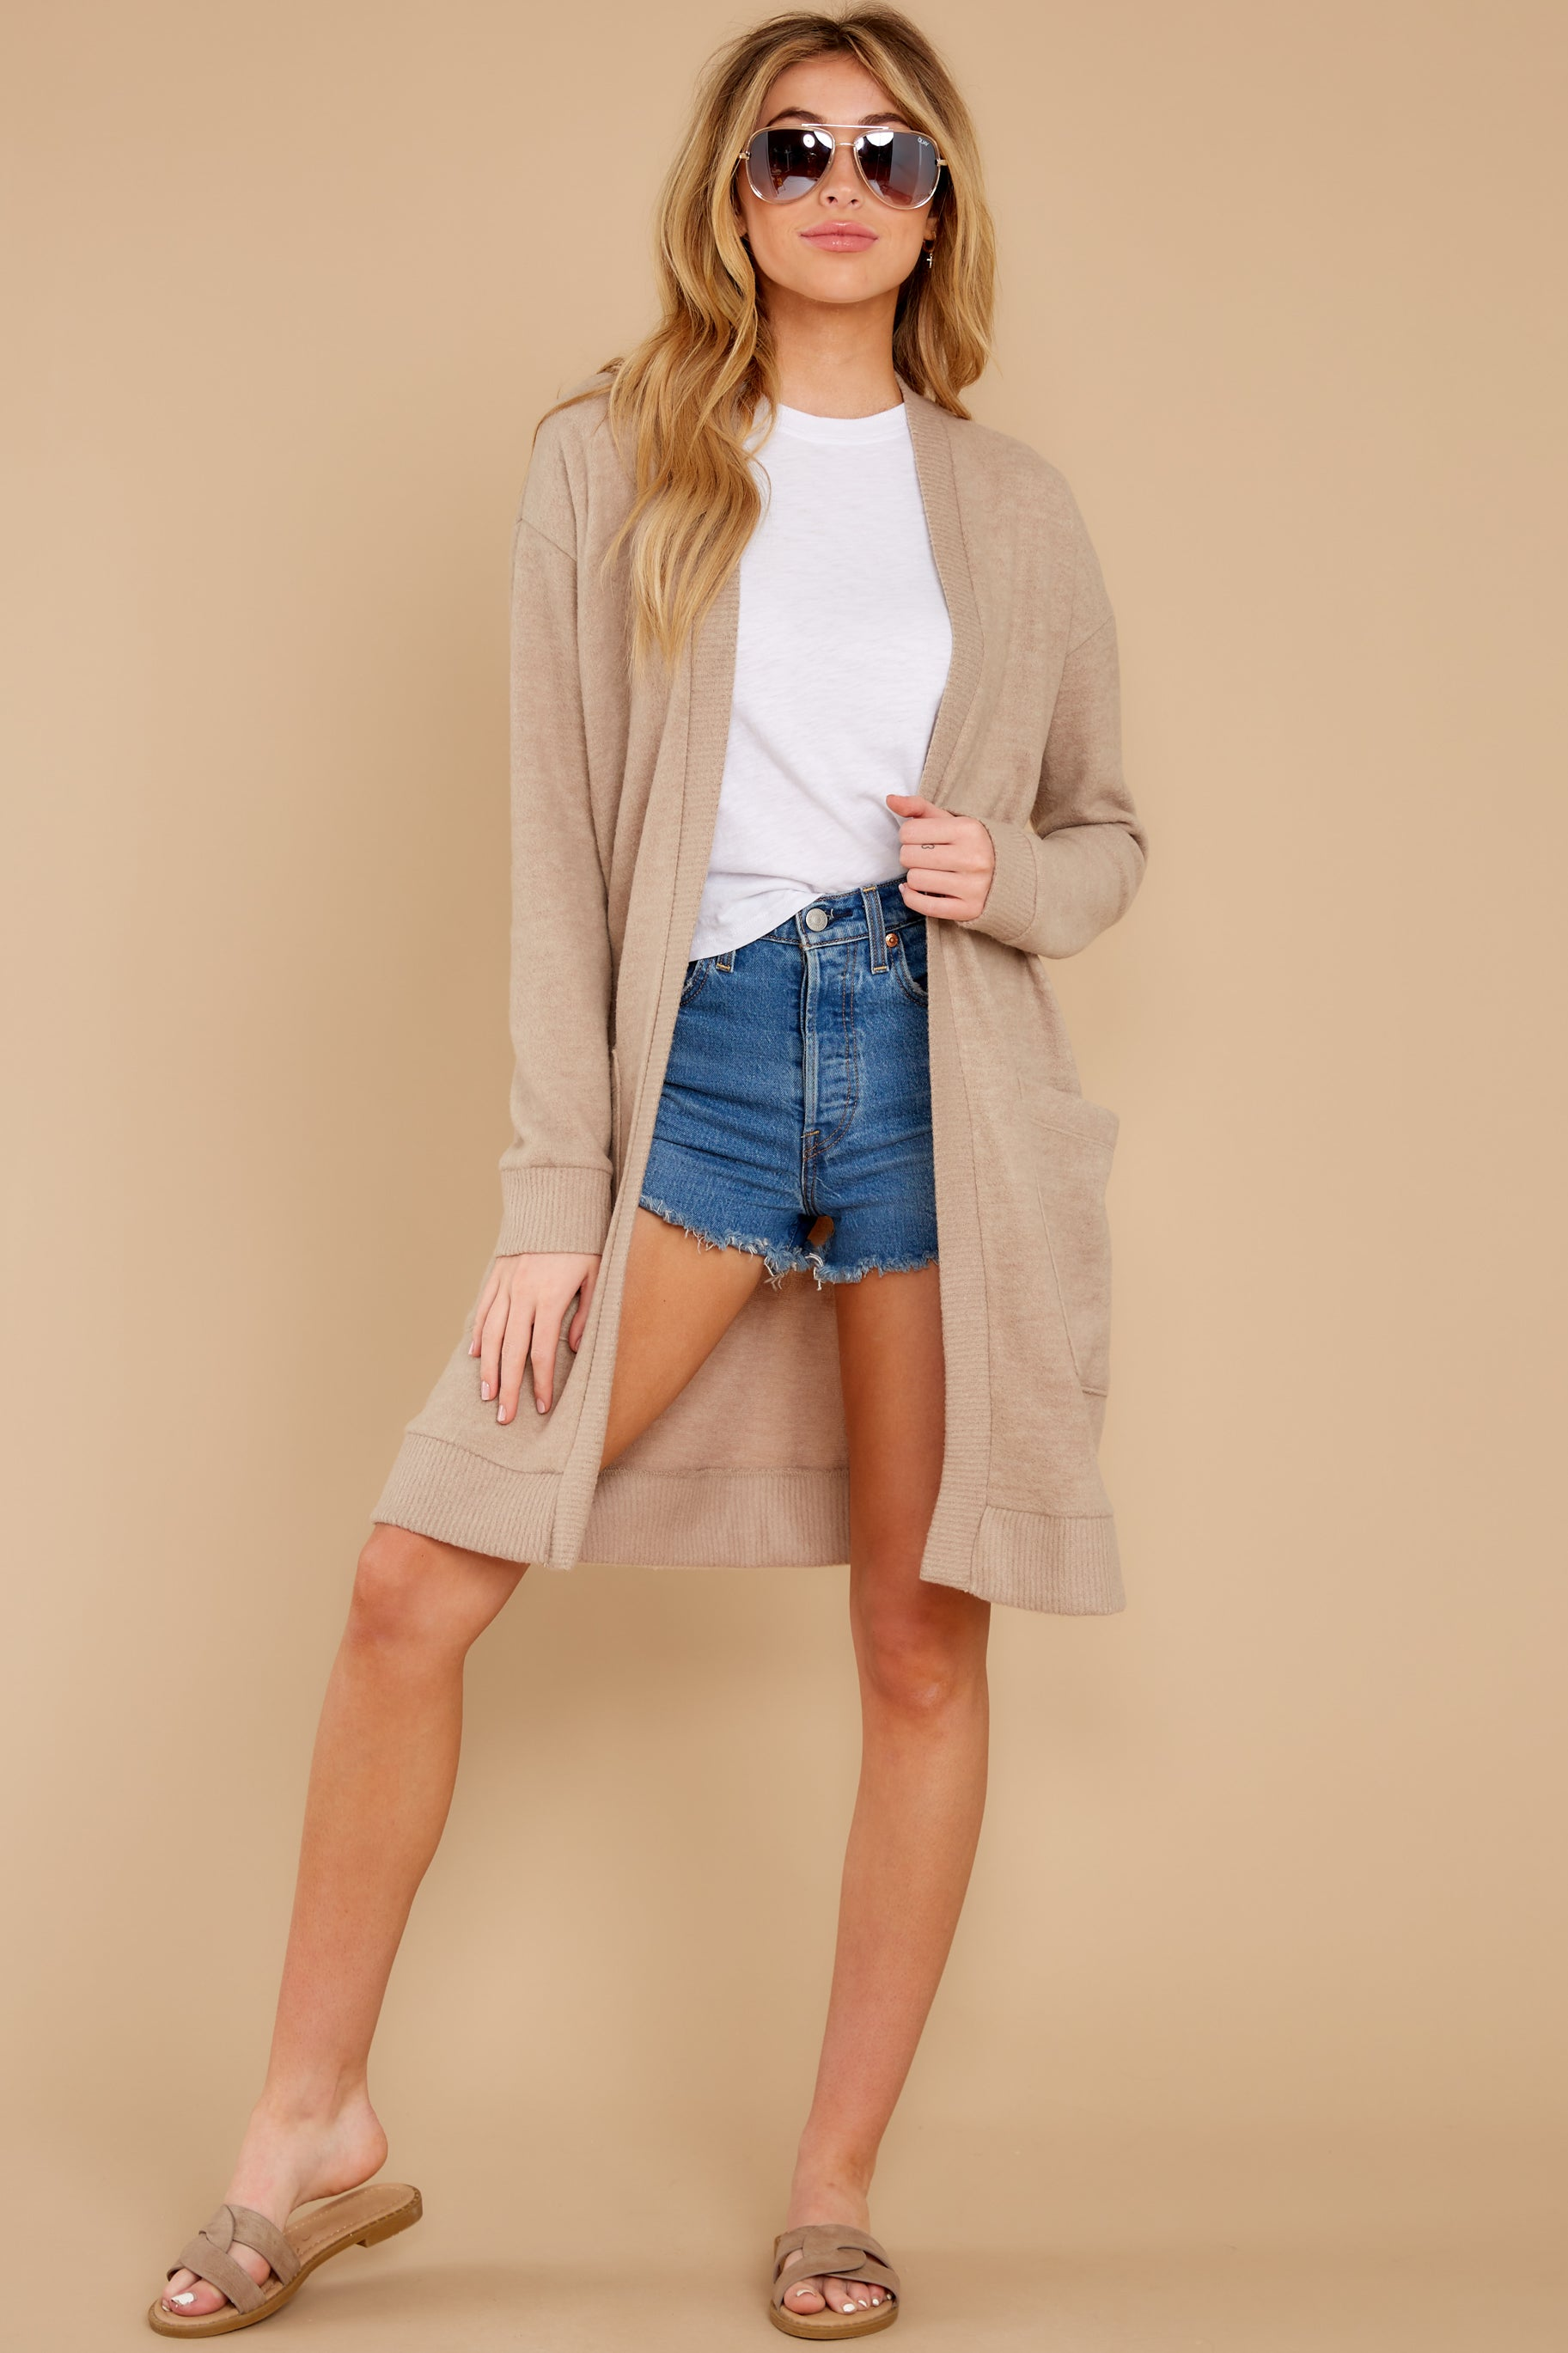 5 All I Really Want Taupe Cardigan at reddress.com